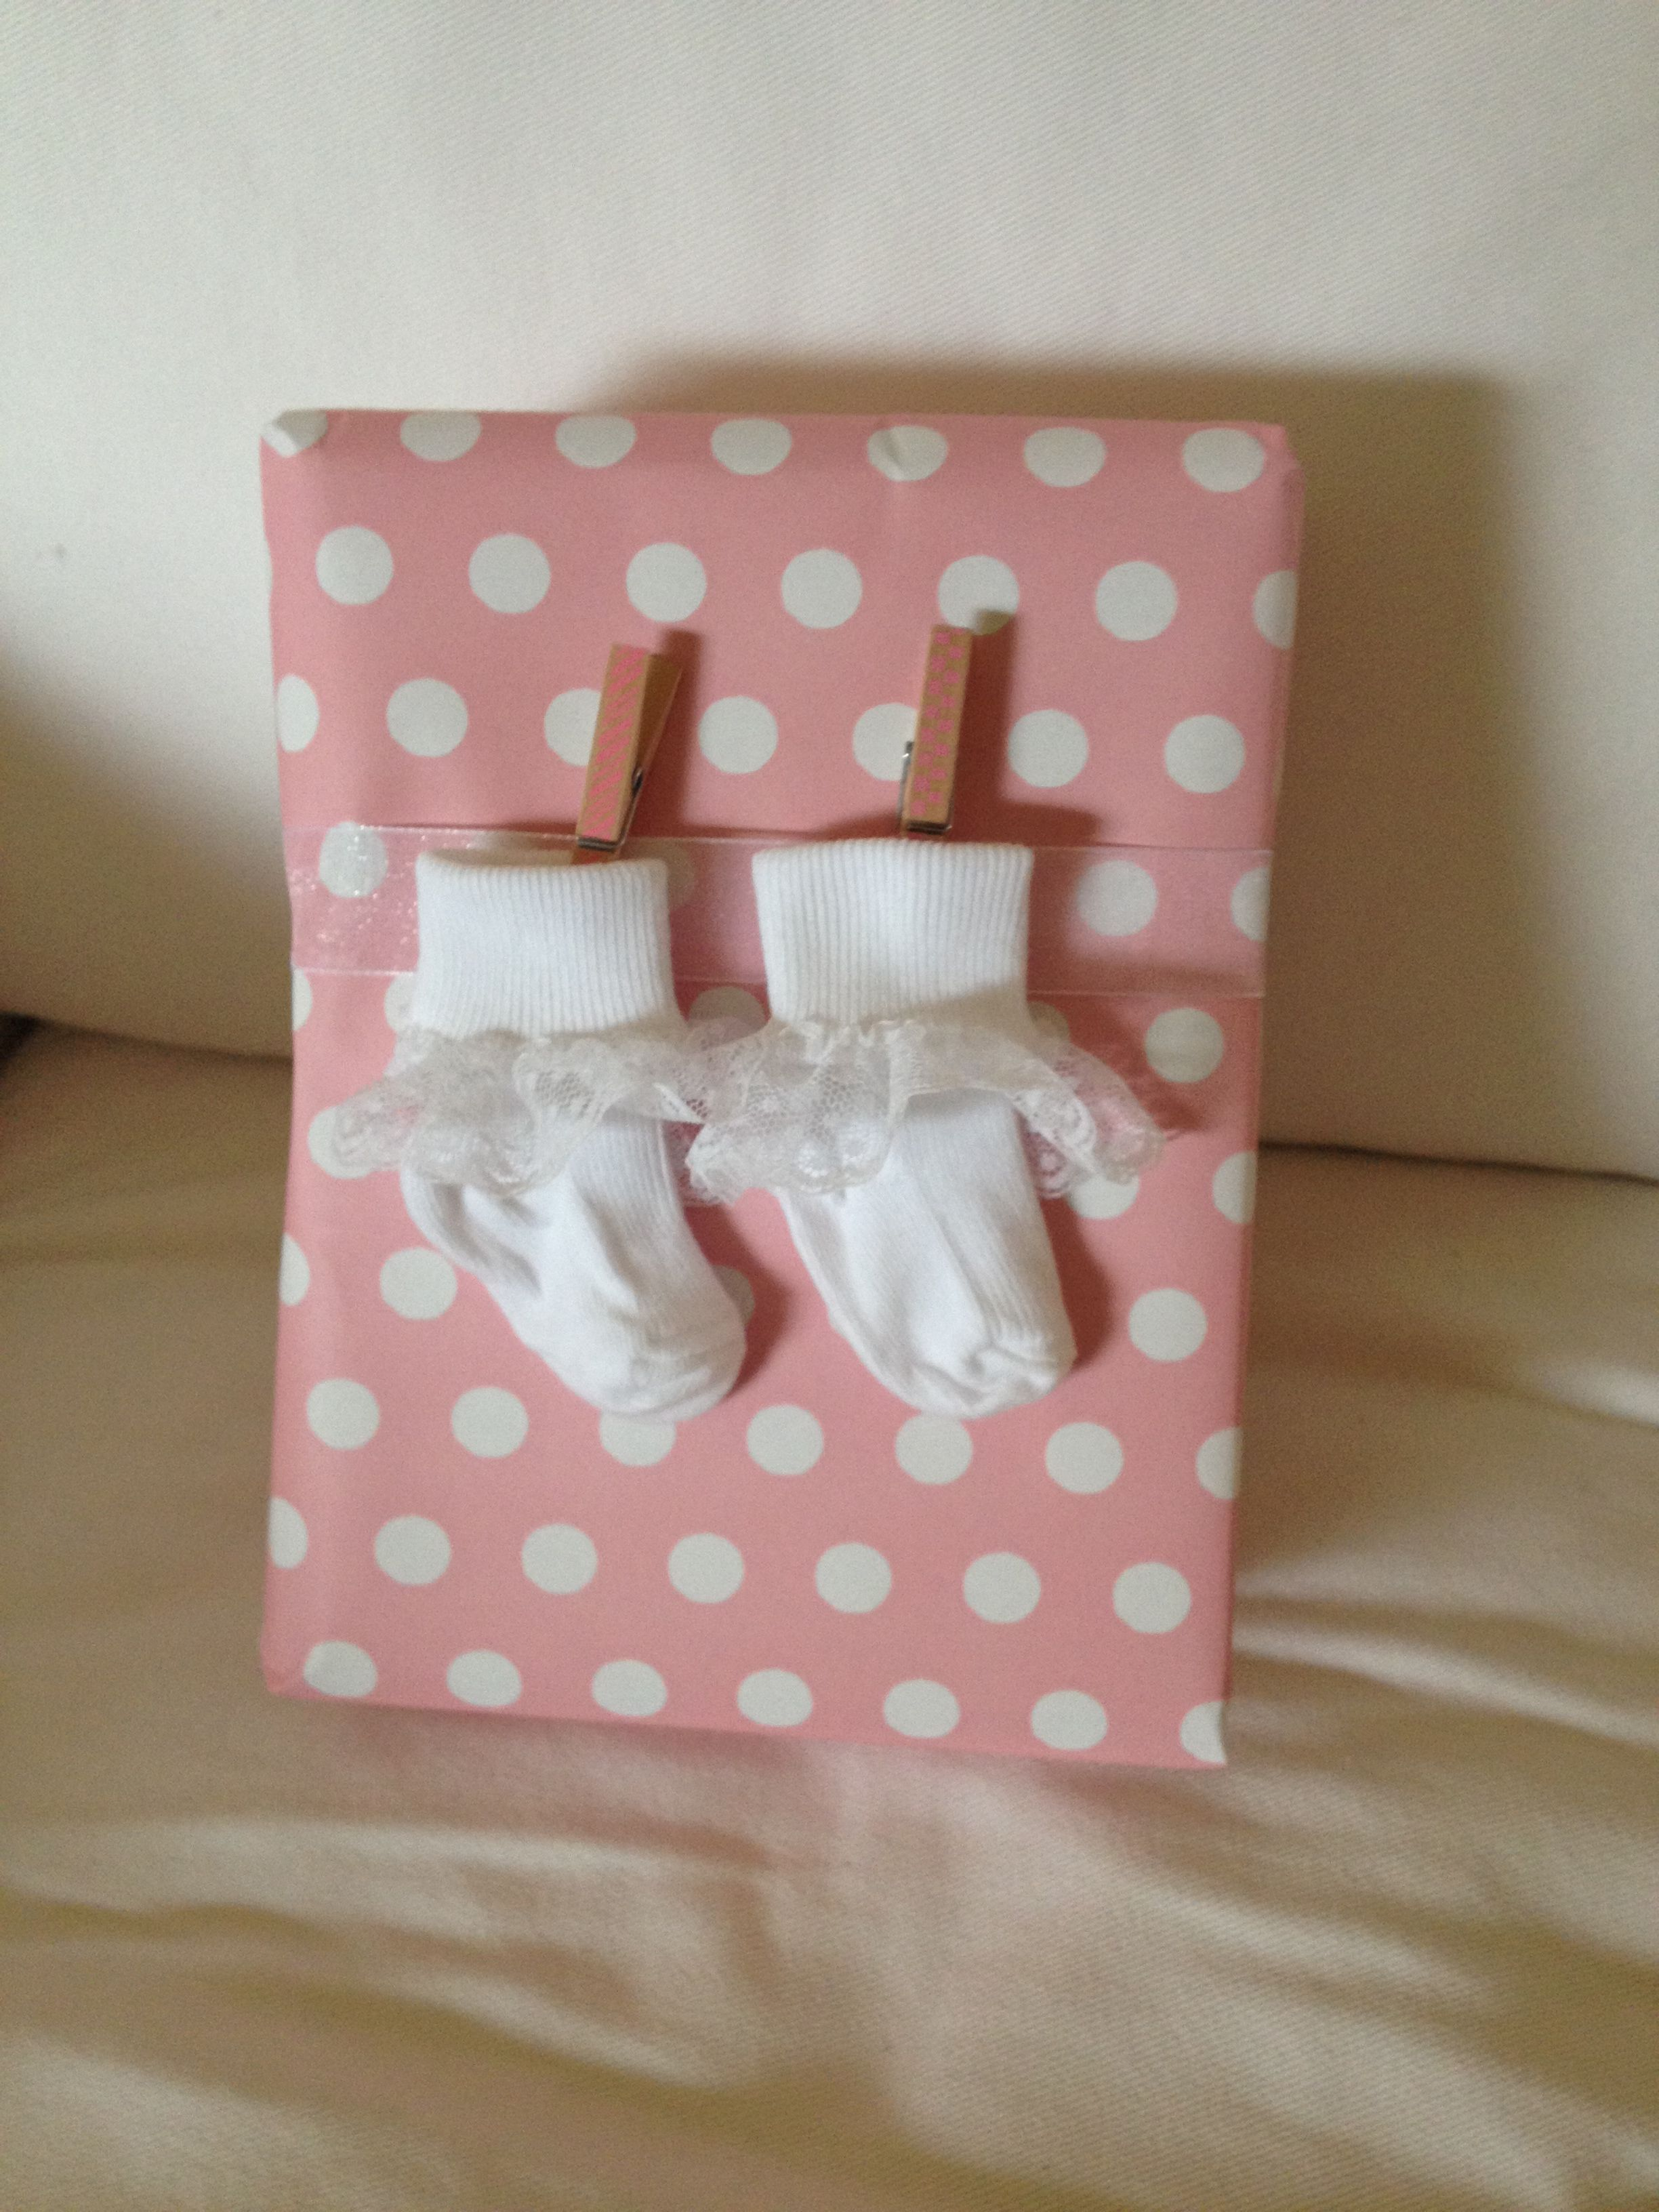 So Cute For Baby Gifts Tie A Ribbon Around The Gift And Attach Some